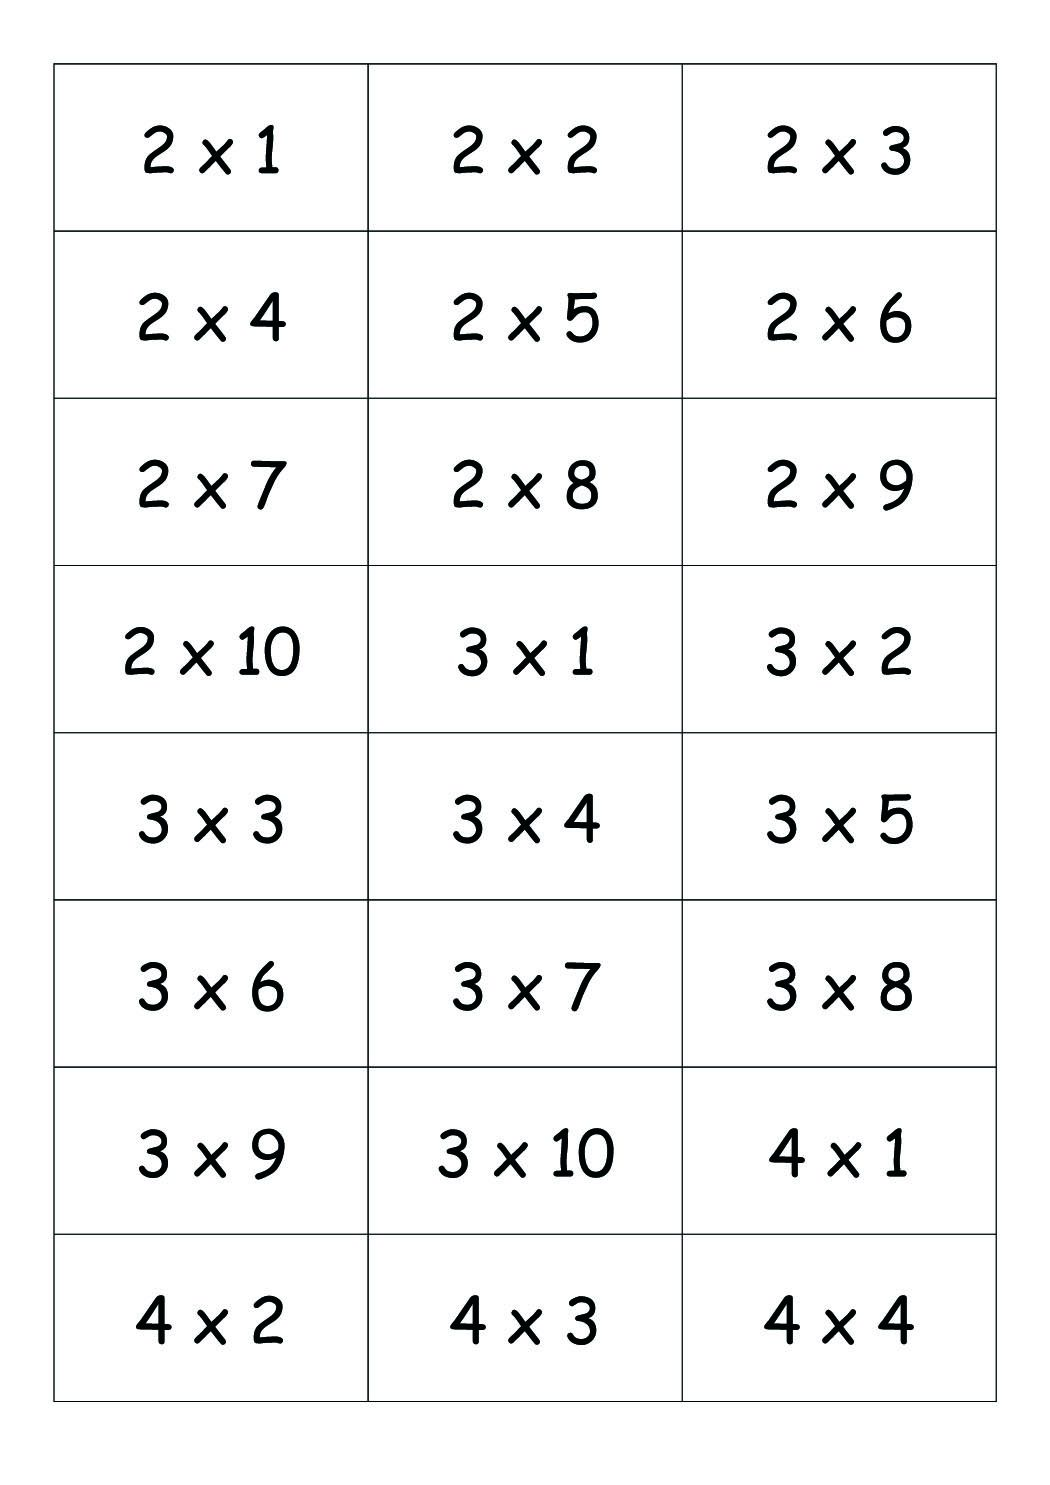 Exercice table de multiplication 2 3 4 5 jeu de for Table de multiplication de 2 a 5